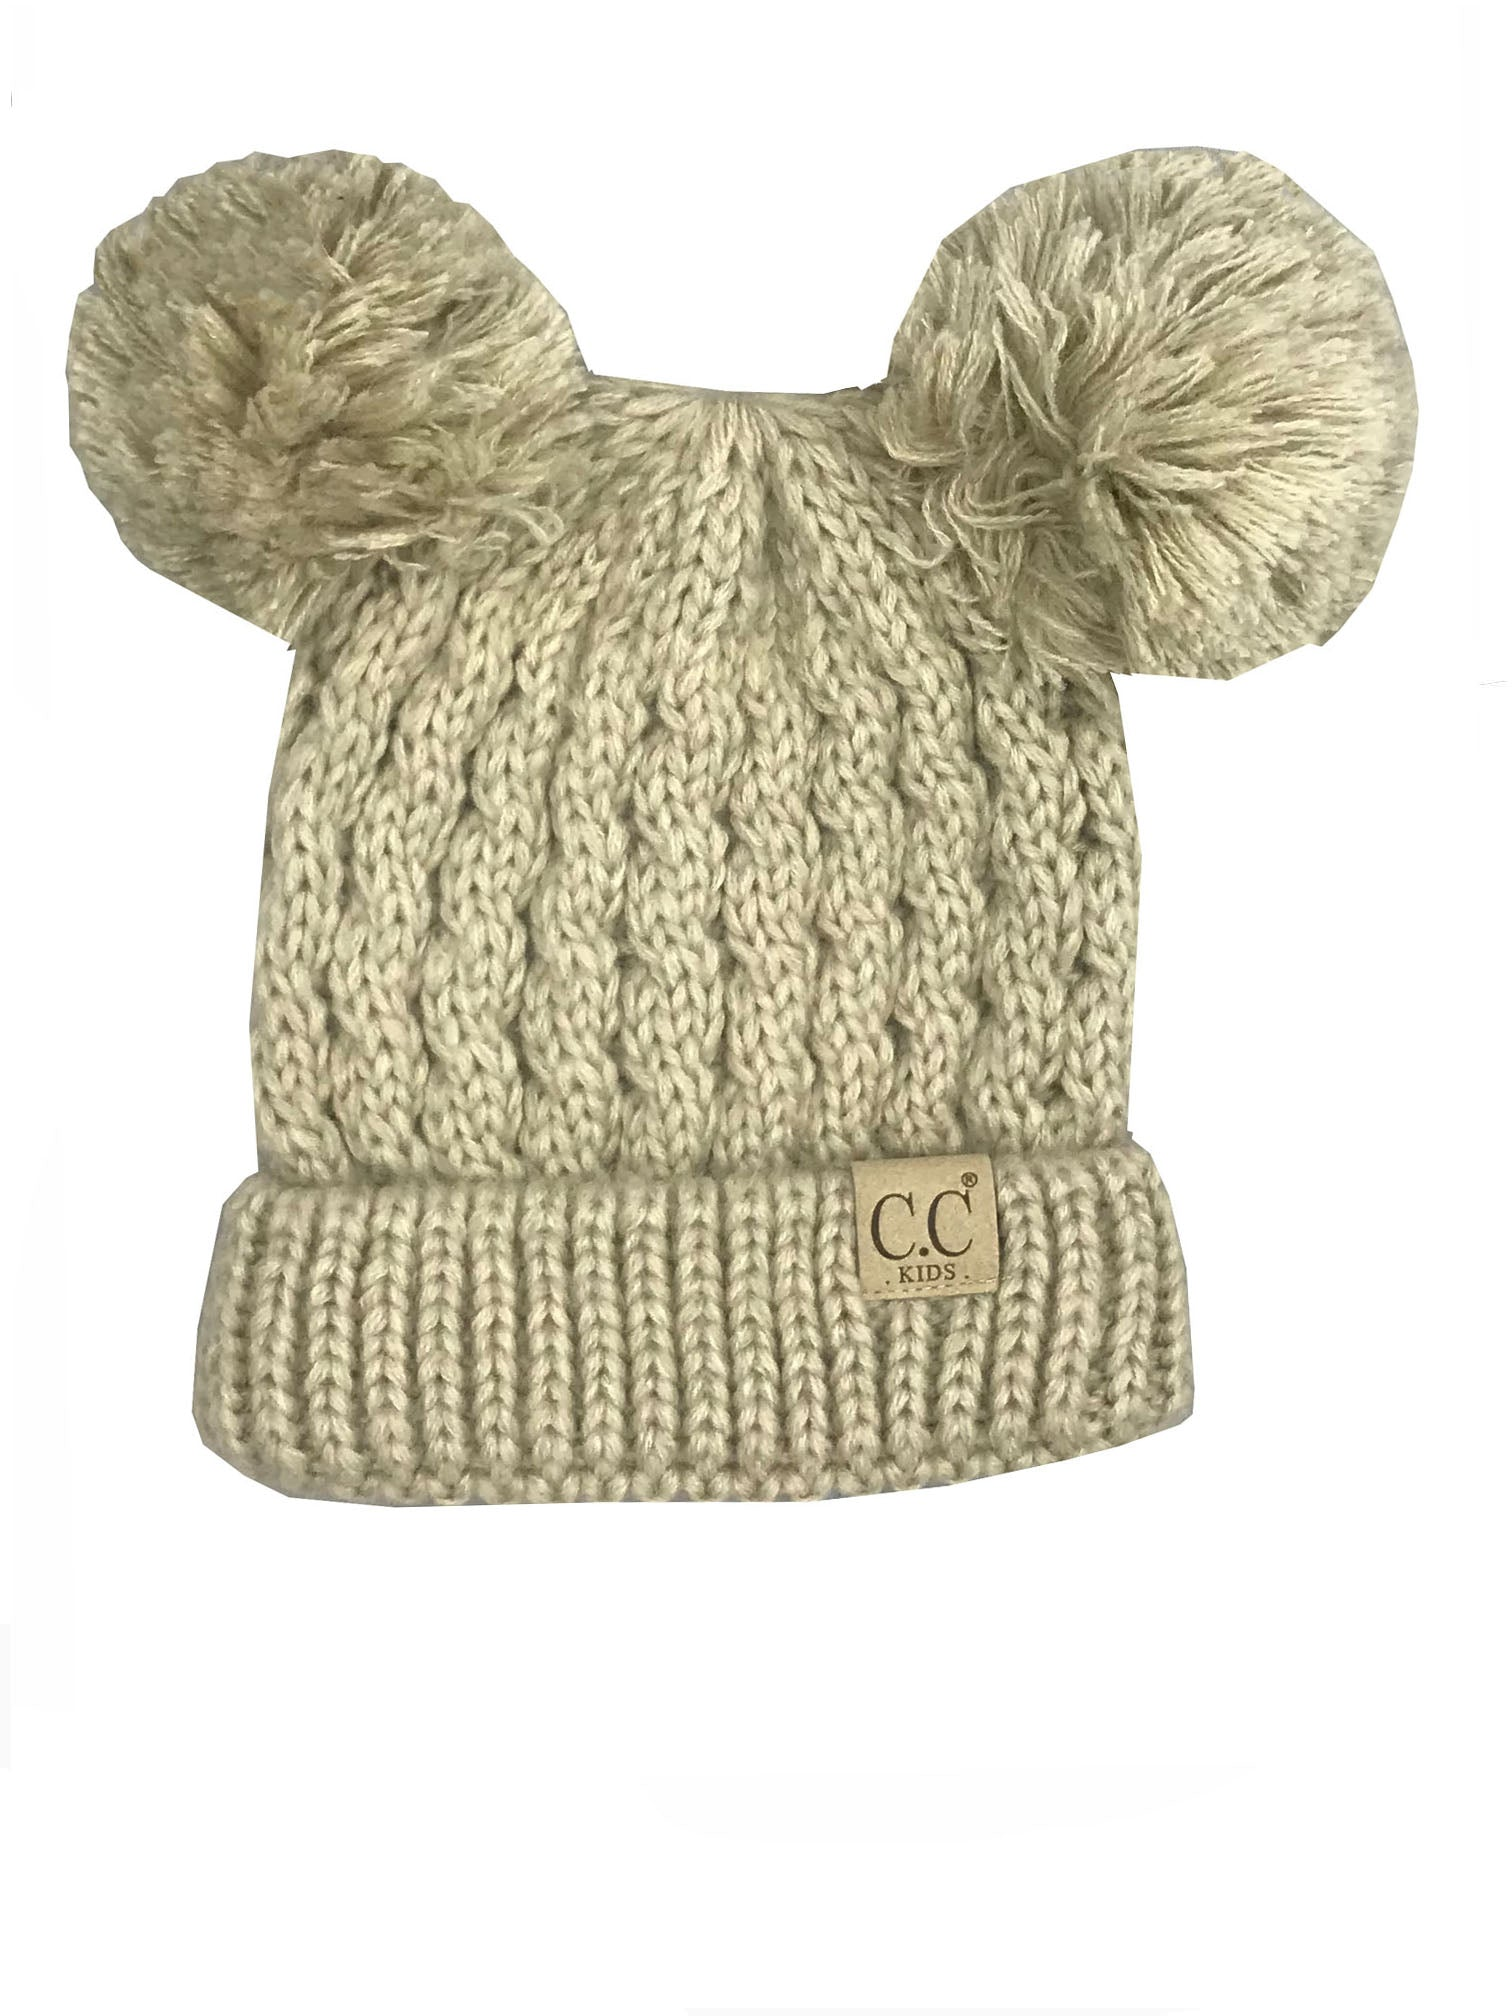 C.C Kid-24 Beige Youth Beanie